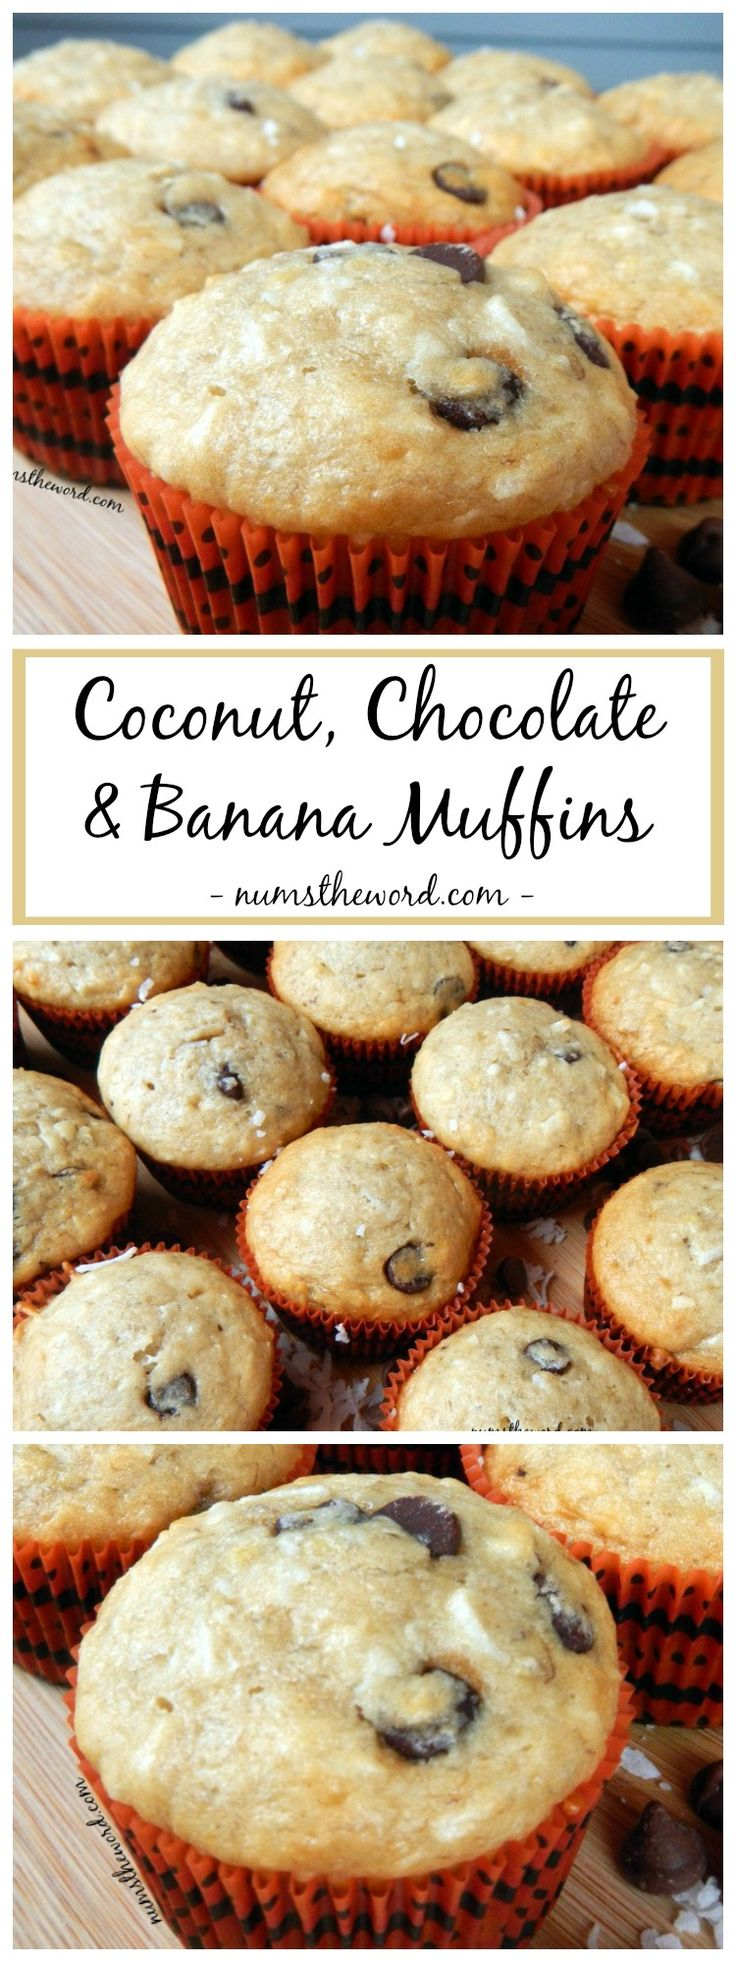 These Coconut, Chocolate & Banana muffins are technically for breakfast, but taste like dessert. Easy, delicious and my all time favorite muffin!